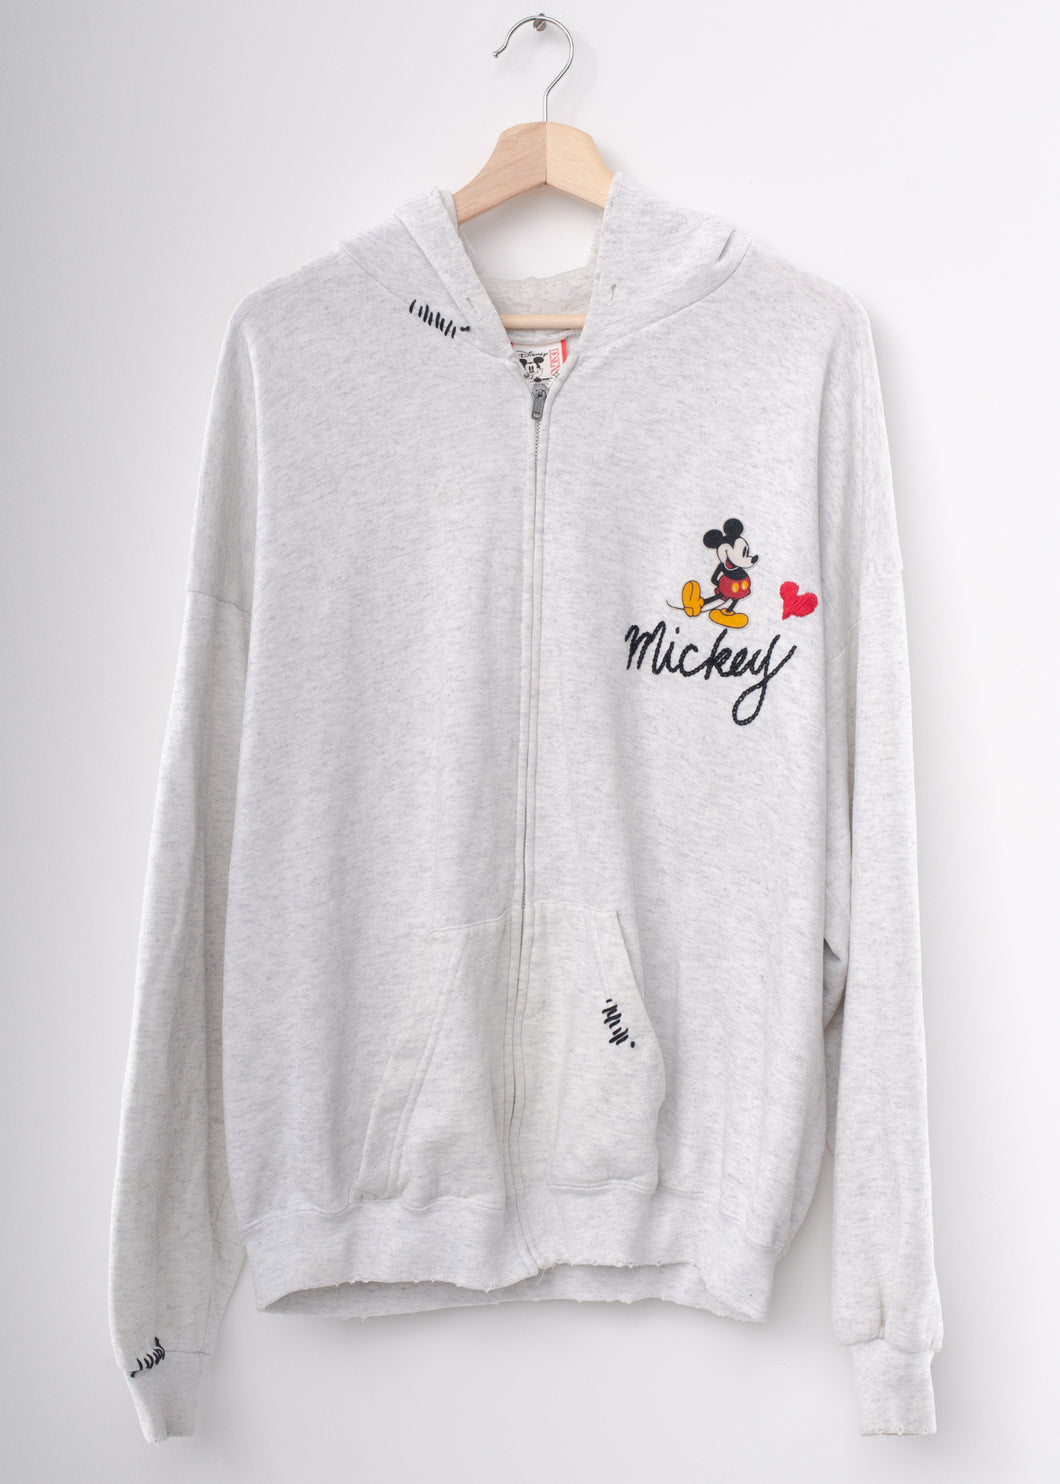 Vintage Mickey ❤️ Embroidery Zip Up Hoodie - Light Grey